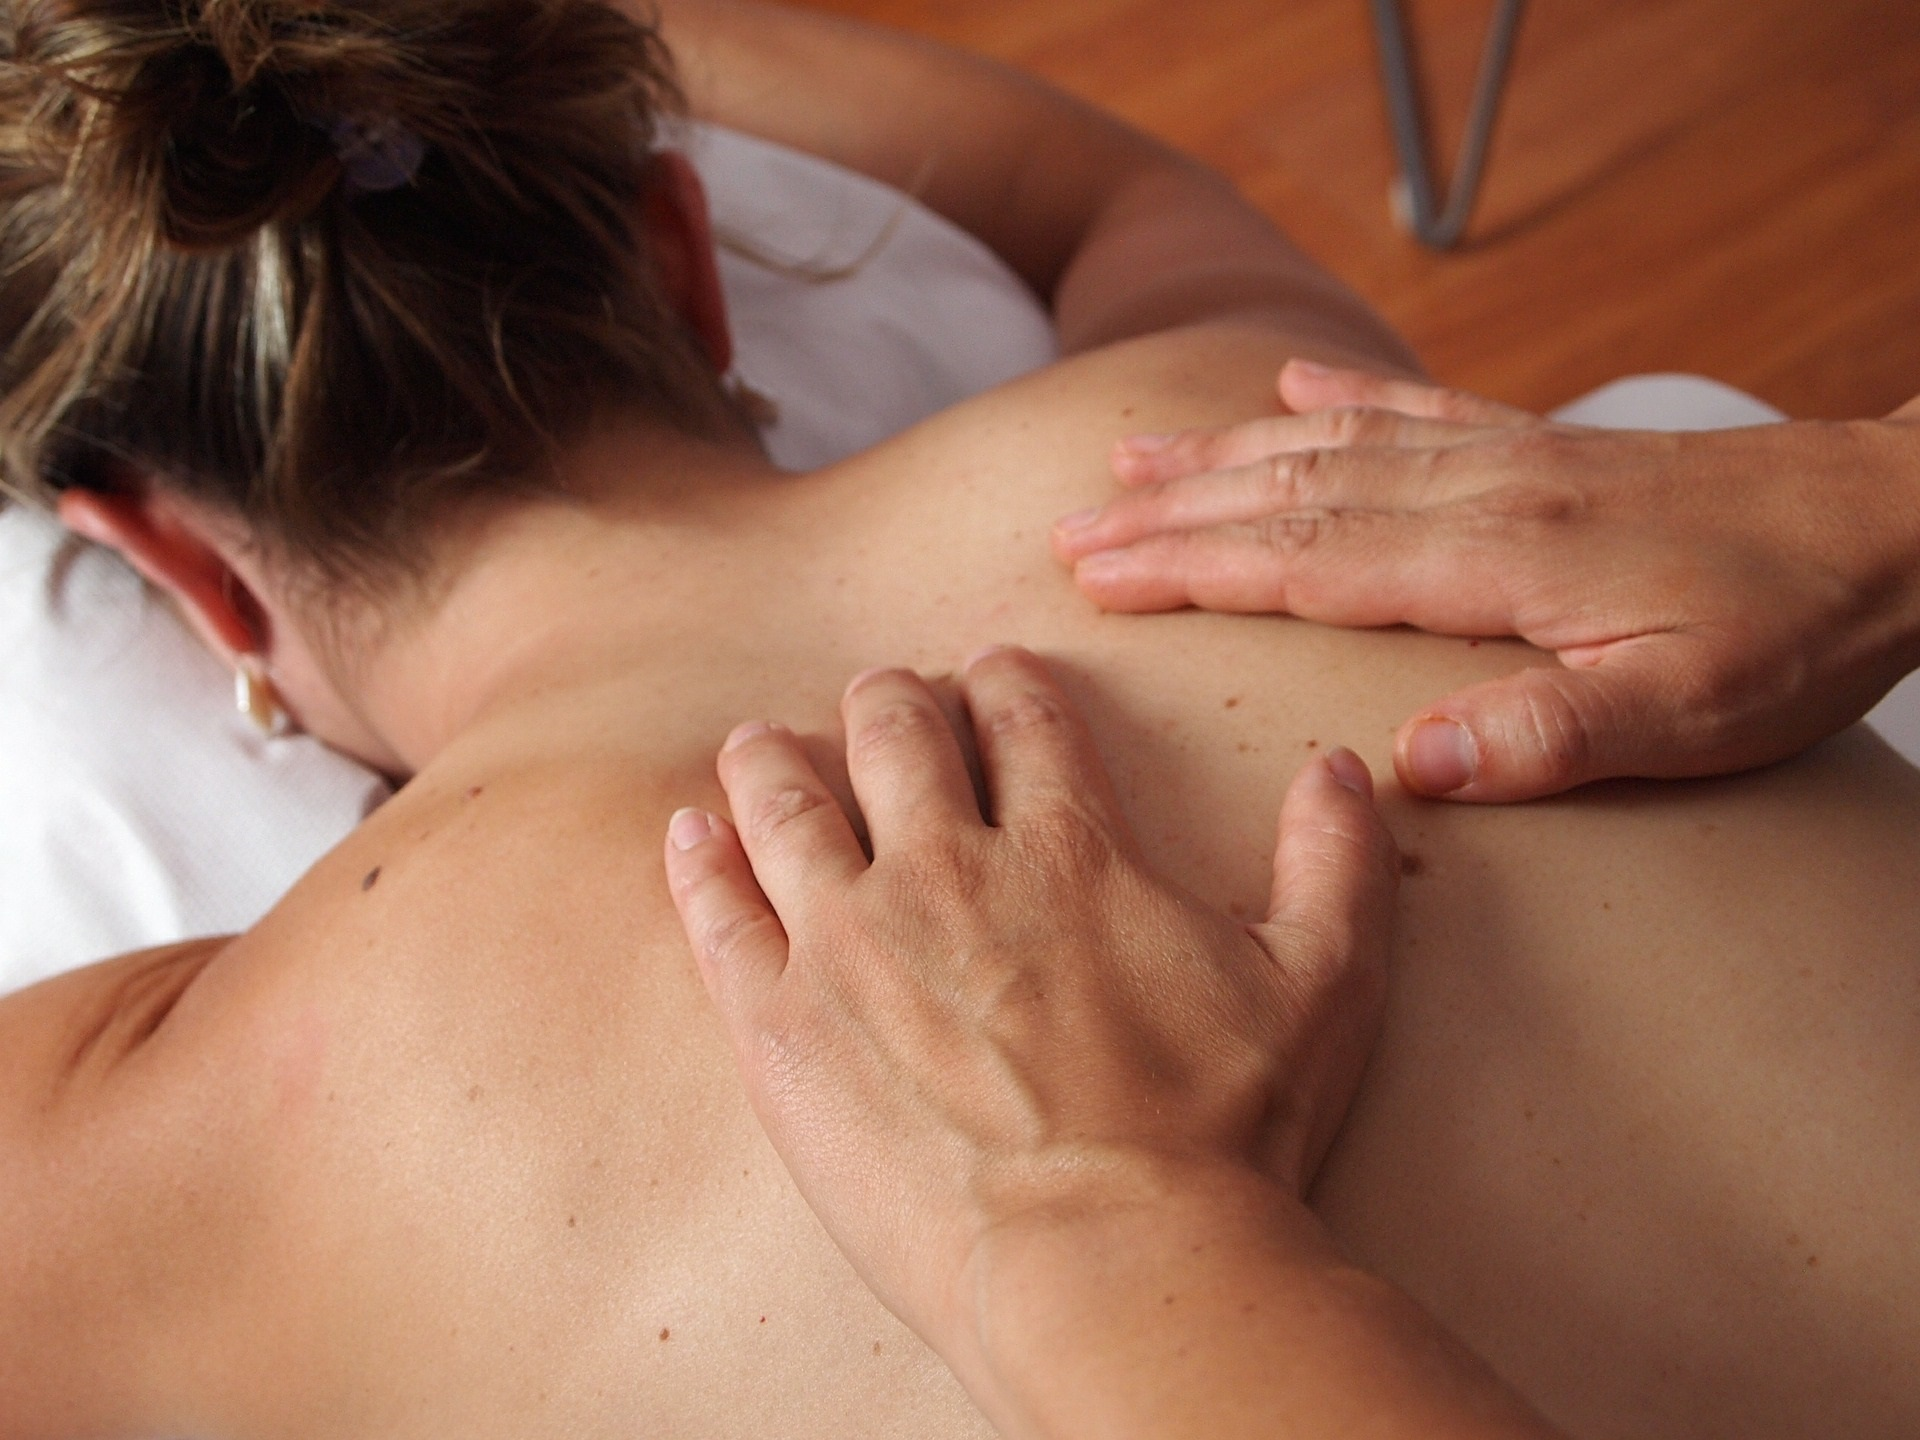 Massage With A Human, Registered Massage Therapist, RMT Vaughan Ontario